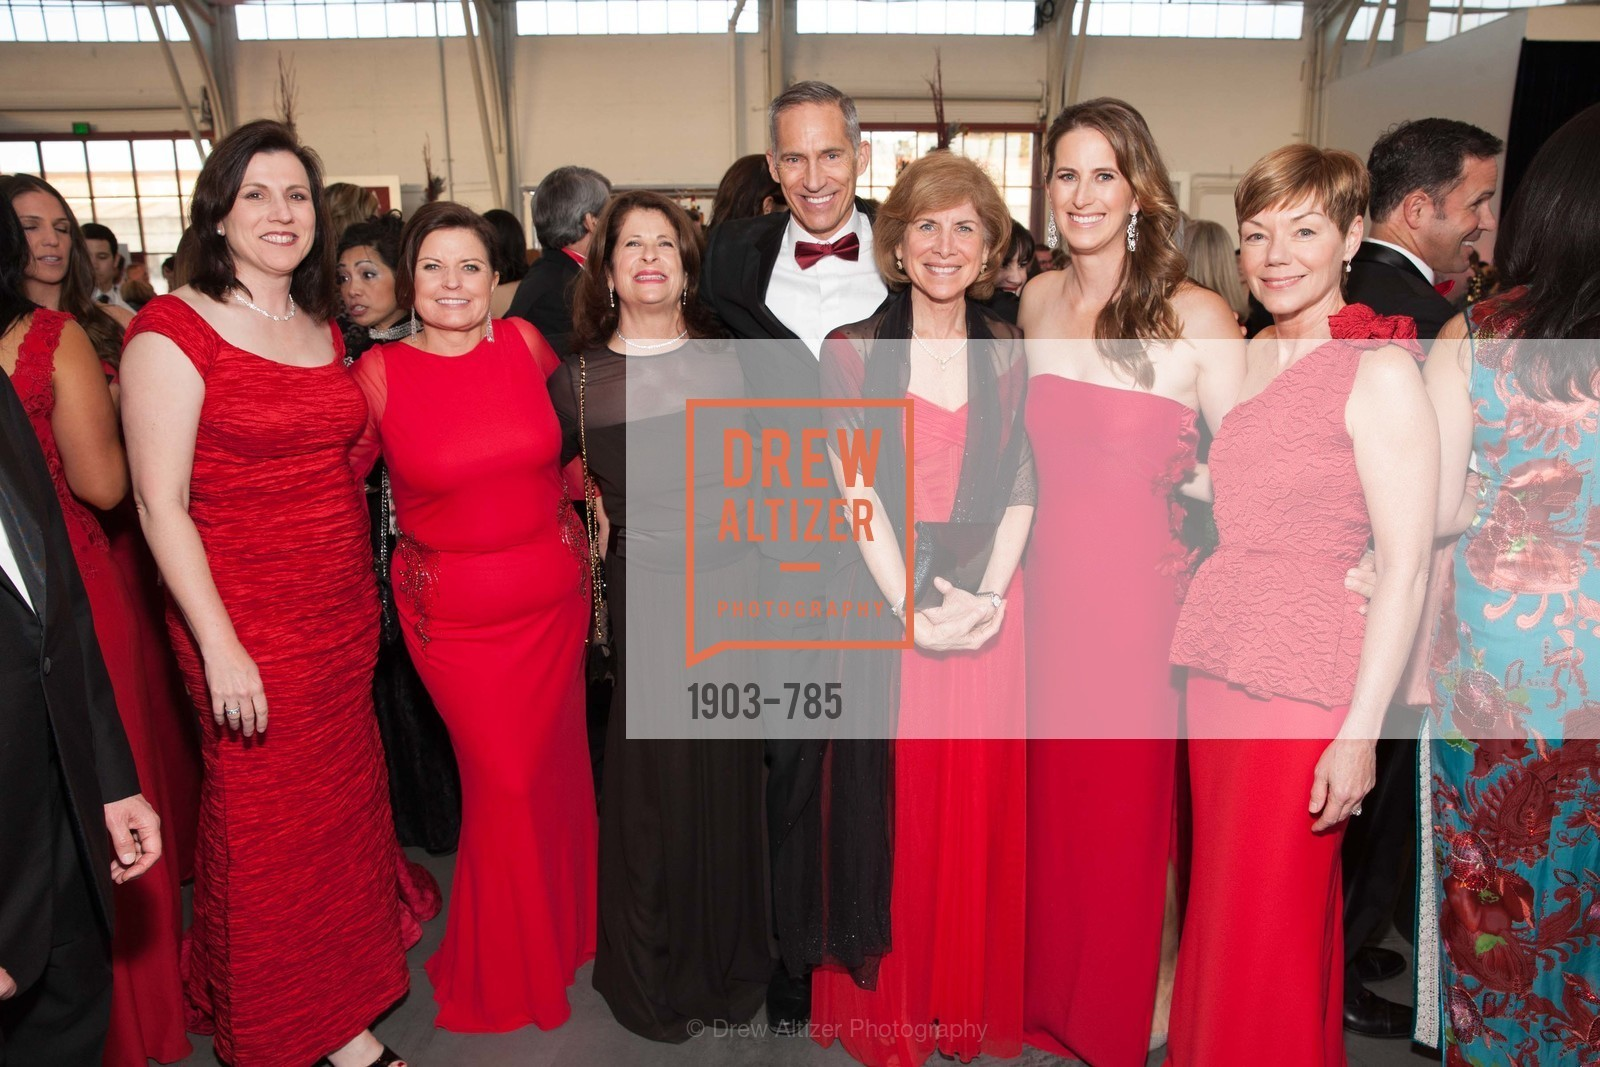 Alexandra Pastor, Elizabeth Folger, Kathryn Holmes, Mark Cloutier, Gail McGovern, Kelly Murphy, Paula Downey, 2015 RED CROSS Gala, US, April 11th, 2015,Drew Altizer, Drew Altizer Photography, full-service agency, private events, San Francisco photographer, photographer california